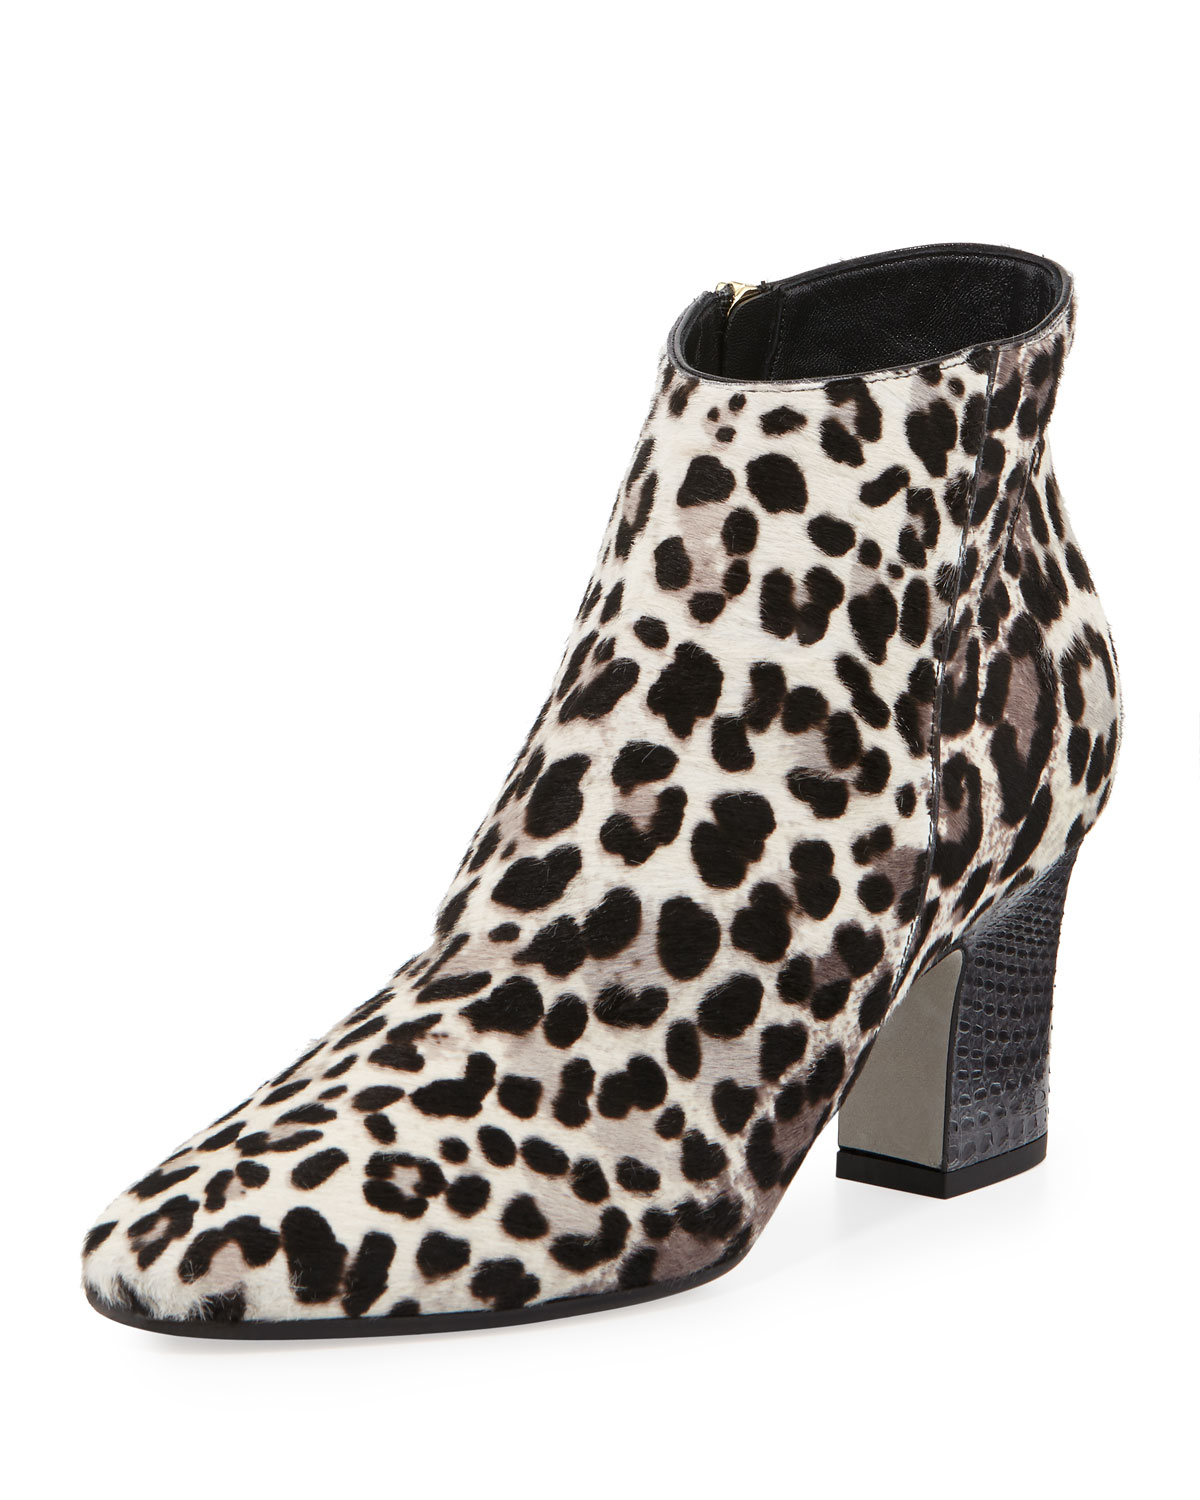 Free shipping BOTH ways on Shoes, Animal Print, Women, from our vast selection of styles. Fast delivery, and 24/7/ real-person service with a smile. Click or call